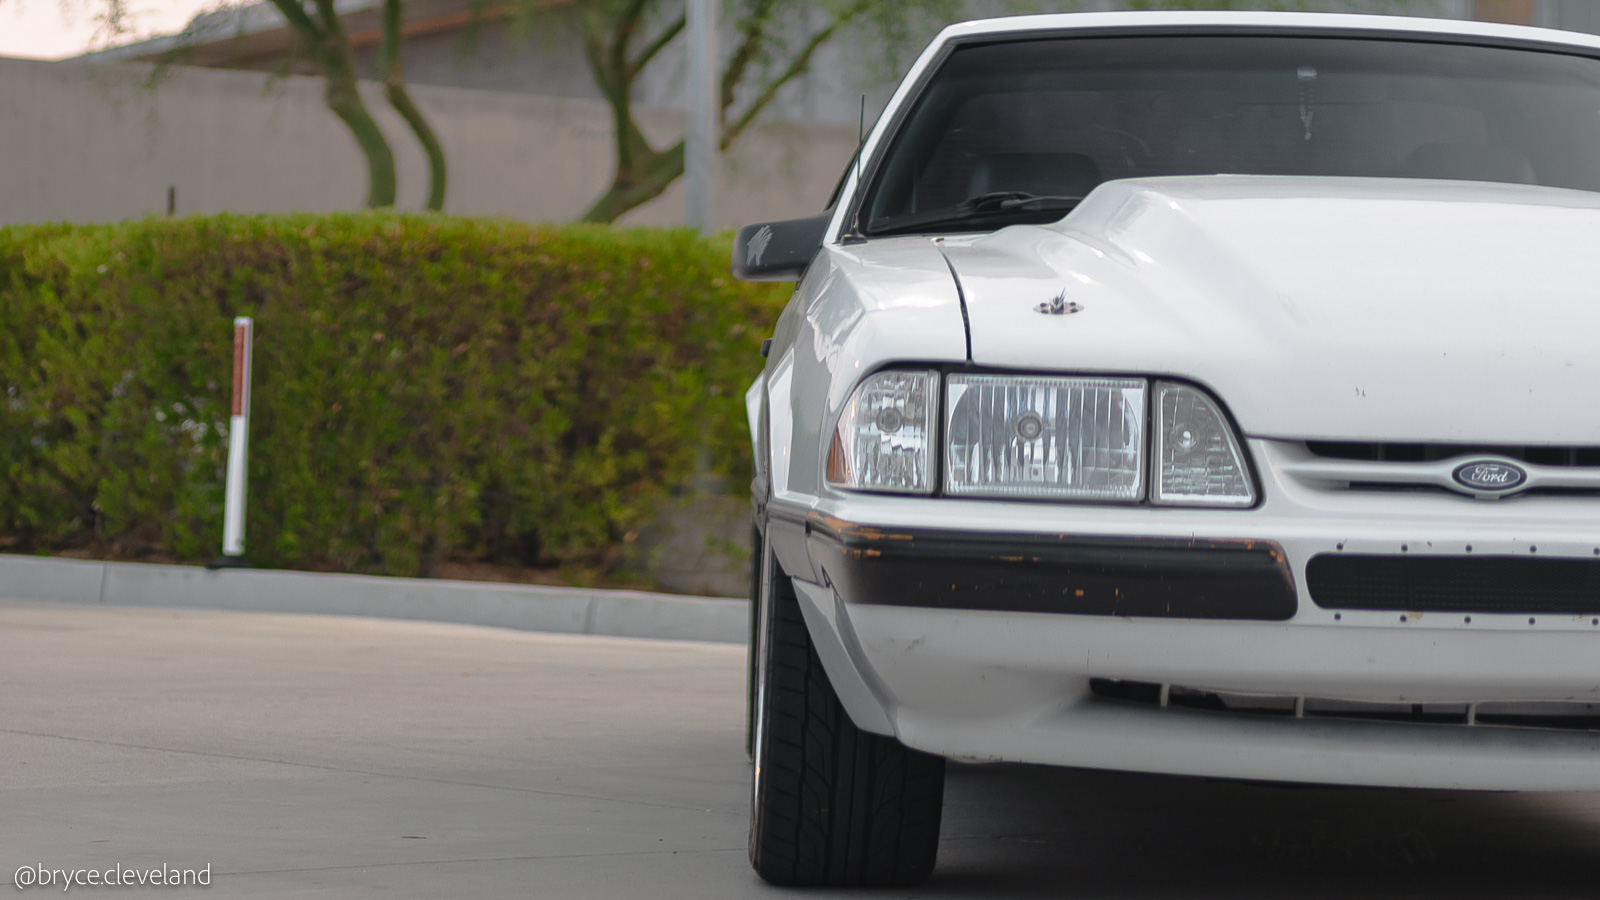 hight resolution of ah the 80s something that the fox body represents strongly back in the day you would see fox body mustangs around every corner